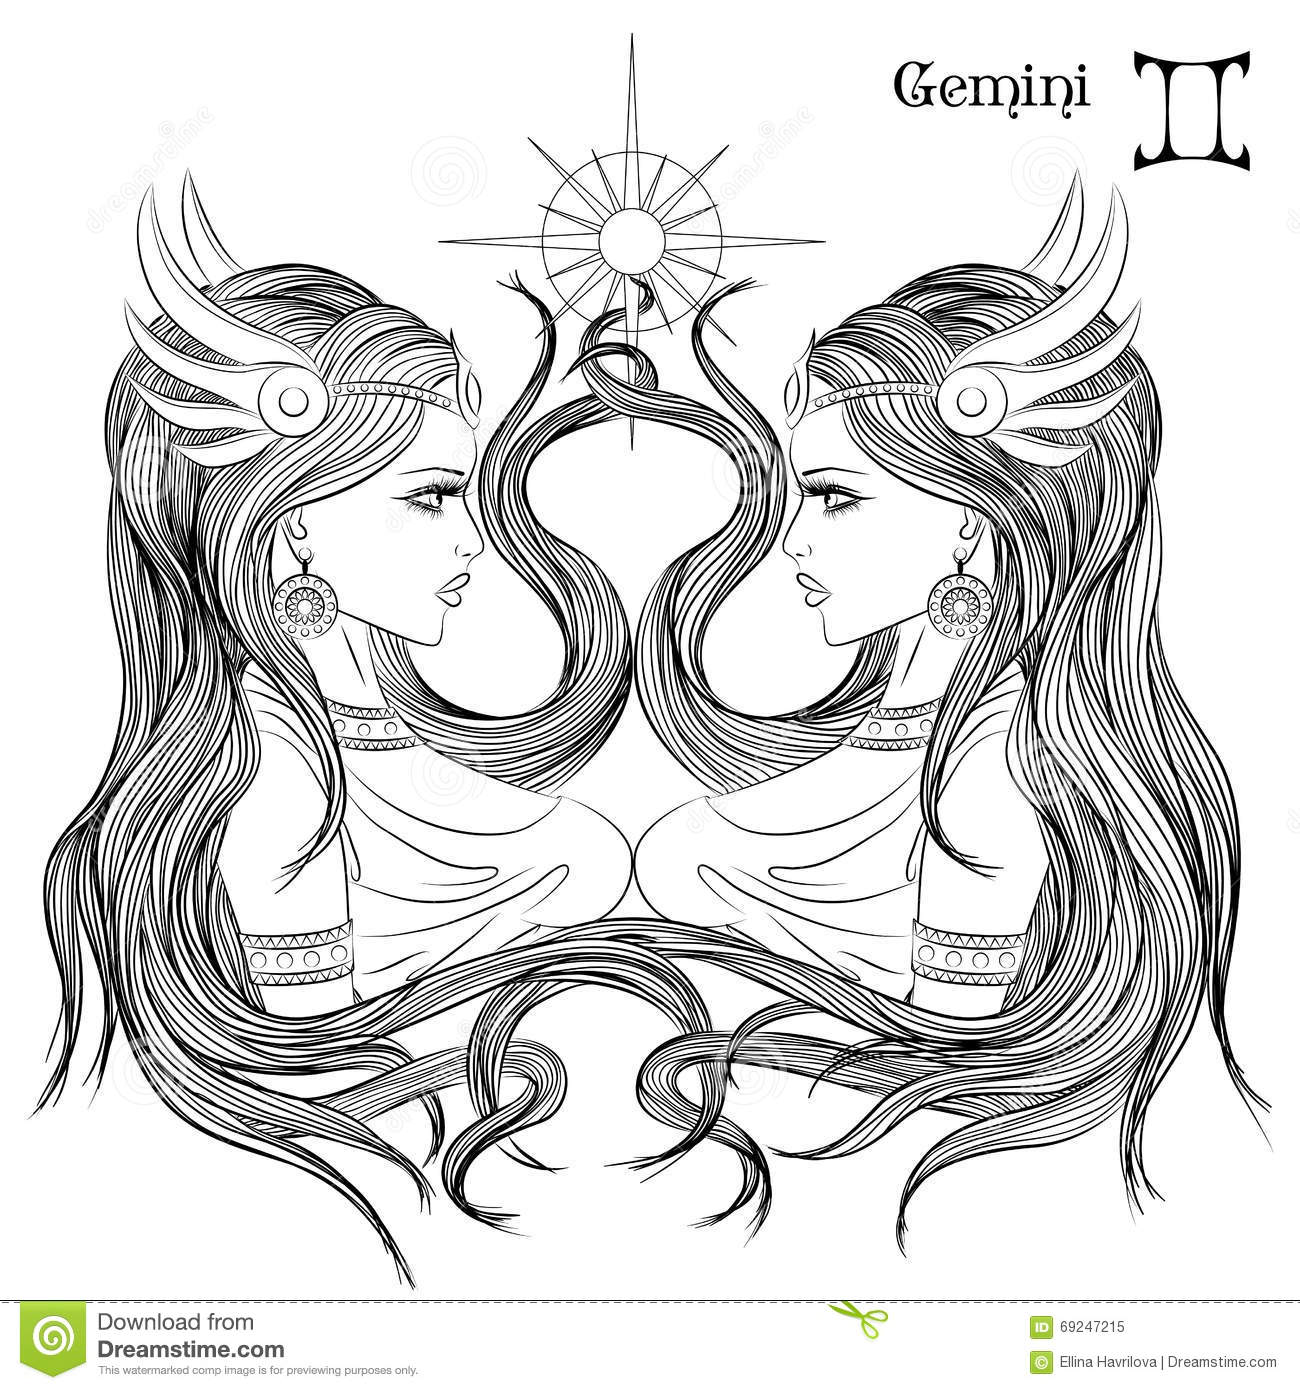 Gemini (Astrology) coloring #2, Download drawings